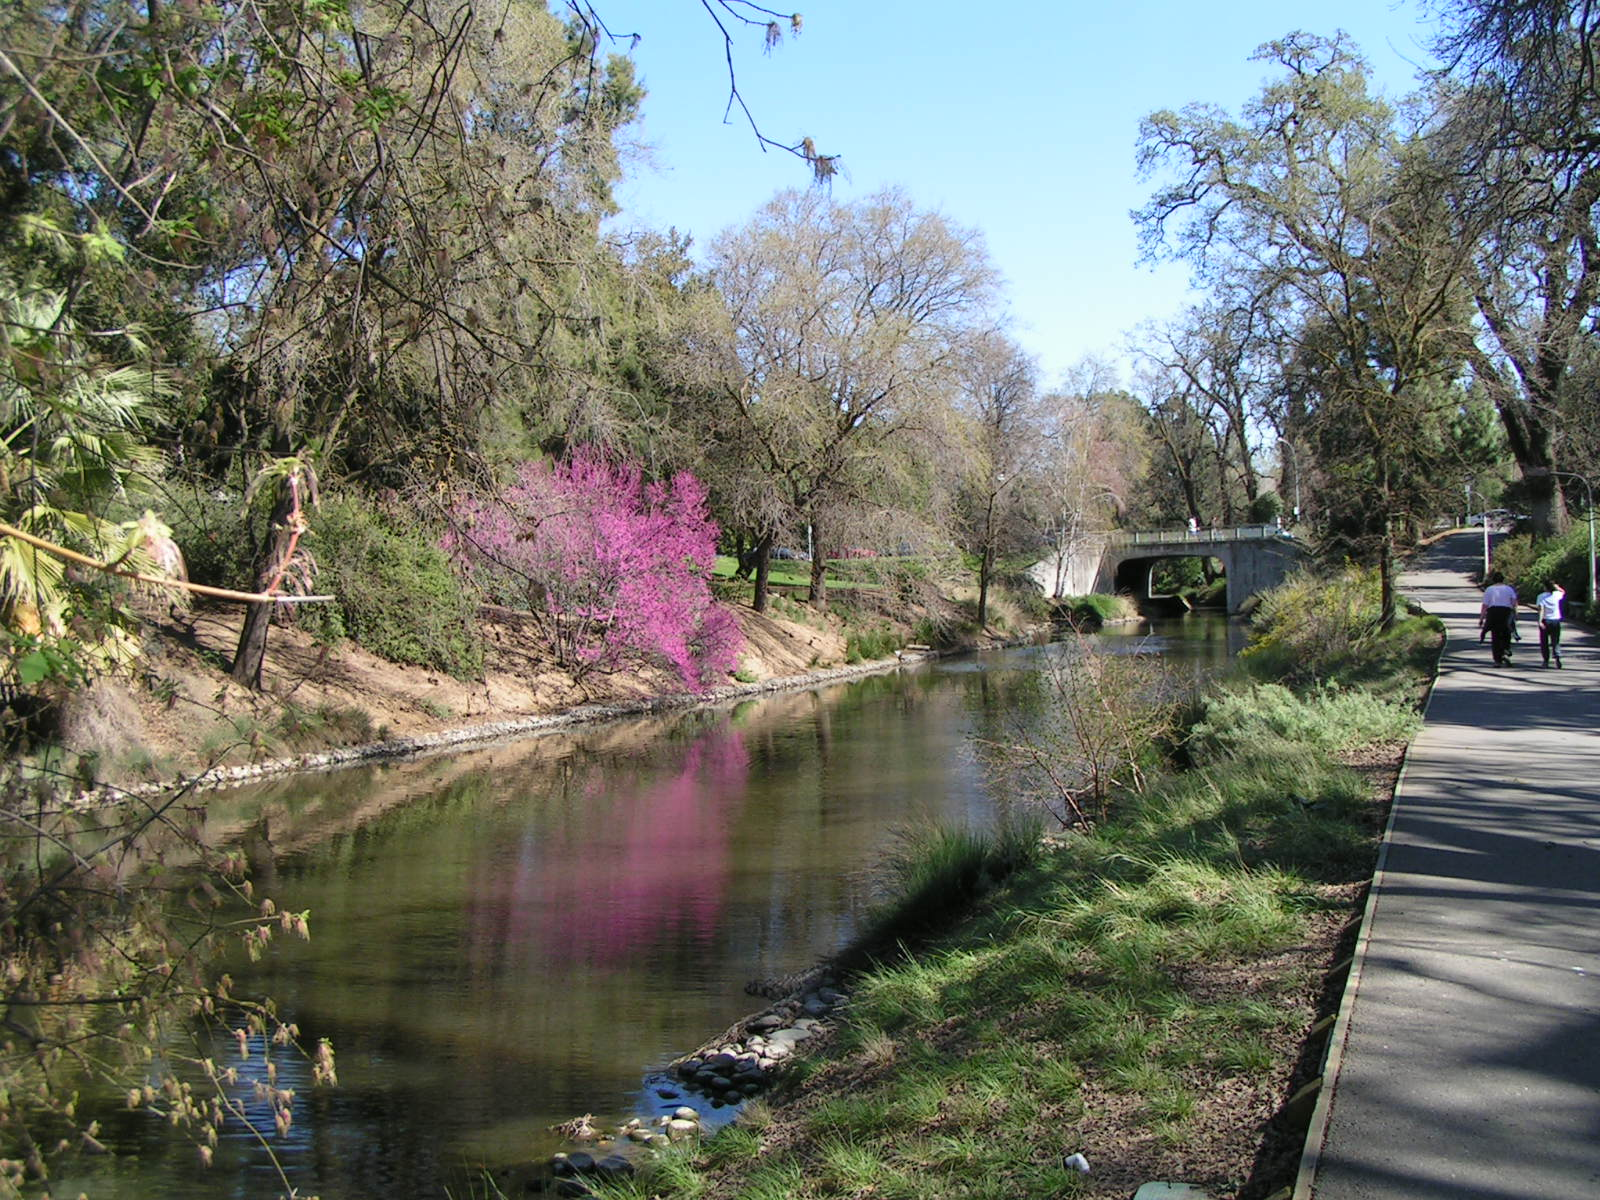 File:Arboretum, UC DAVIS.jpg - Wikipedia, the free encyclopedia